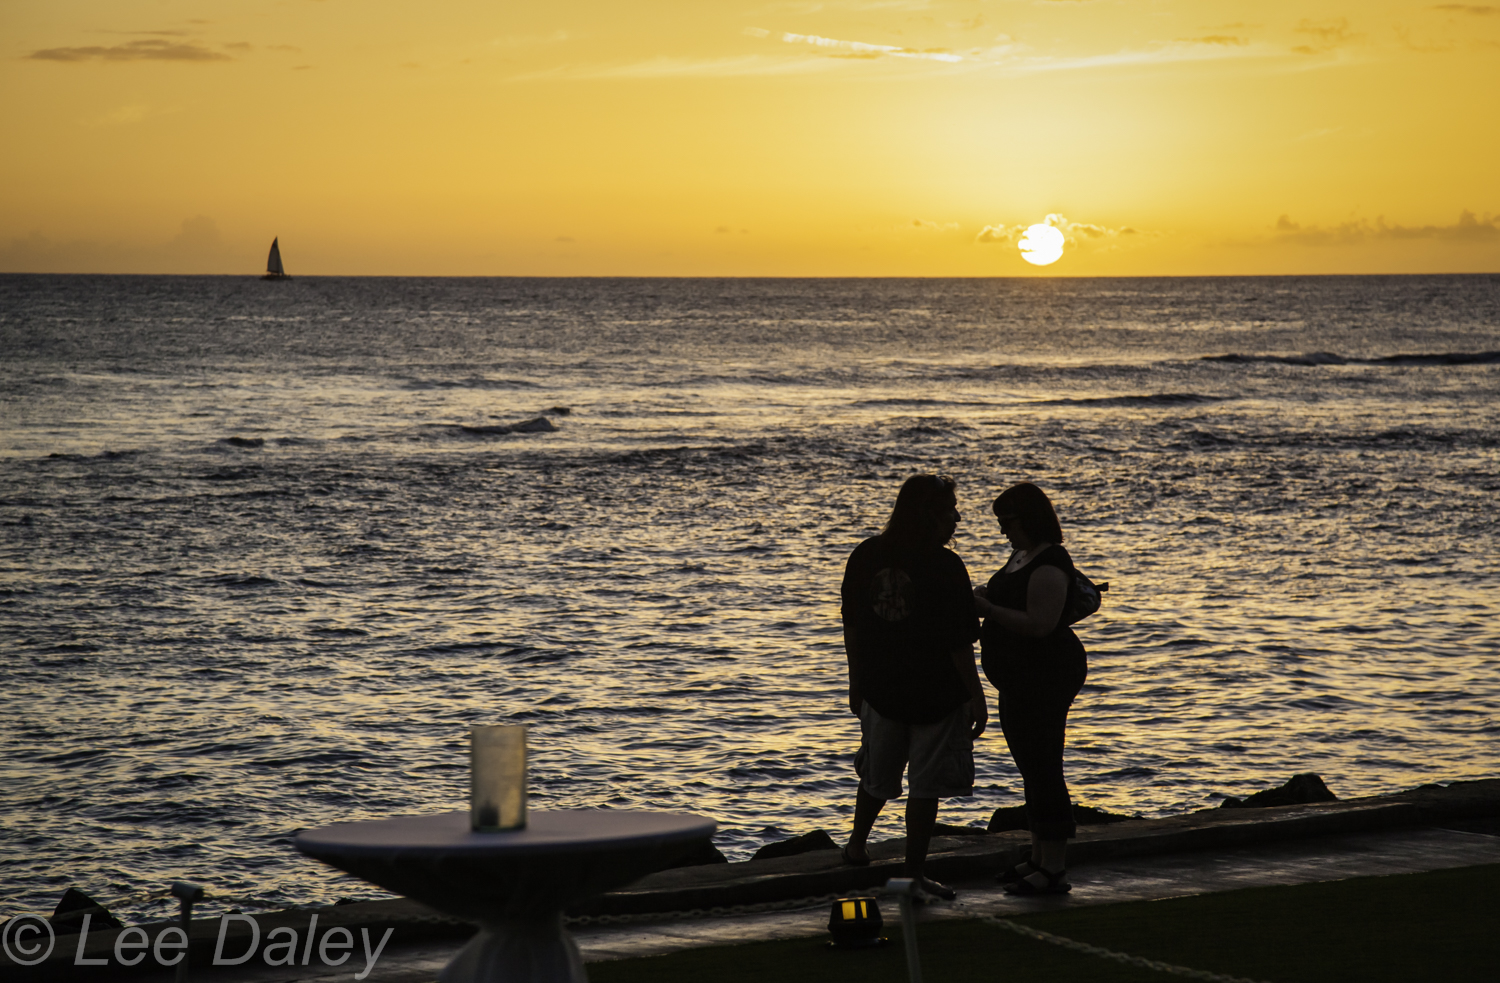 Romantic Kauai, Hawaii's Garden Isle. Sunset as seen from Lawai Beach